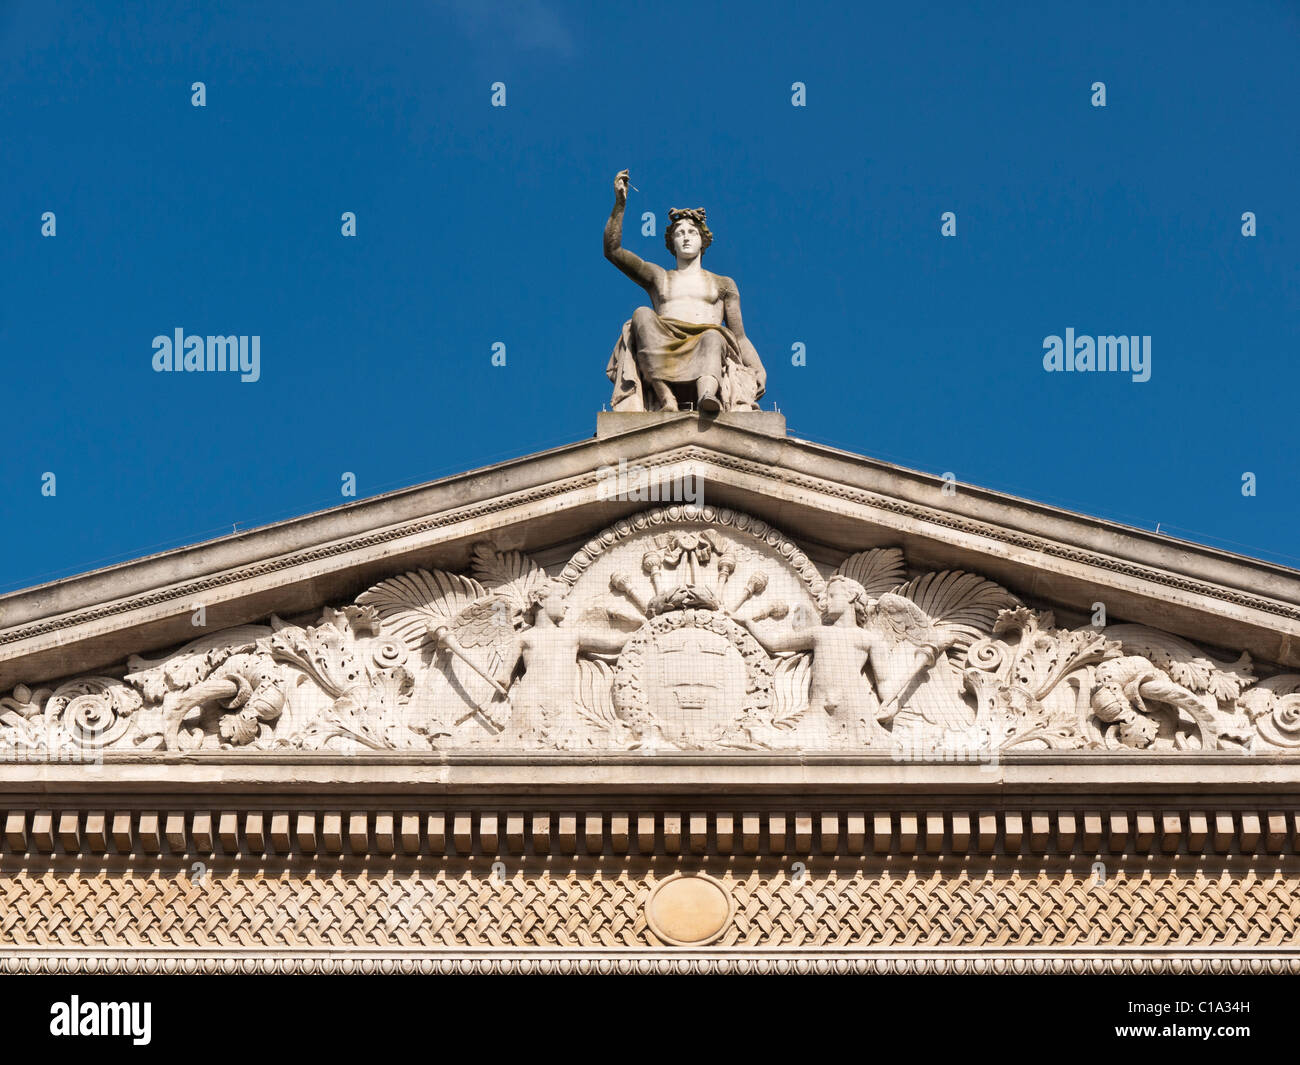 Pediment Ashmolean Museum Oxford - Stock Image